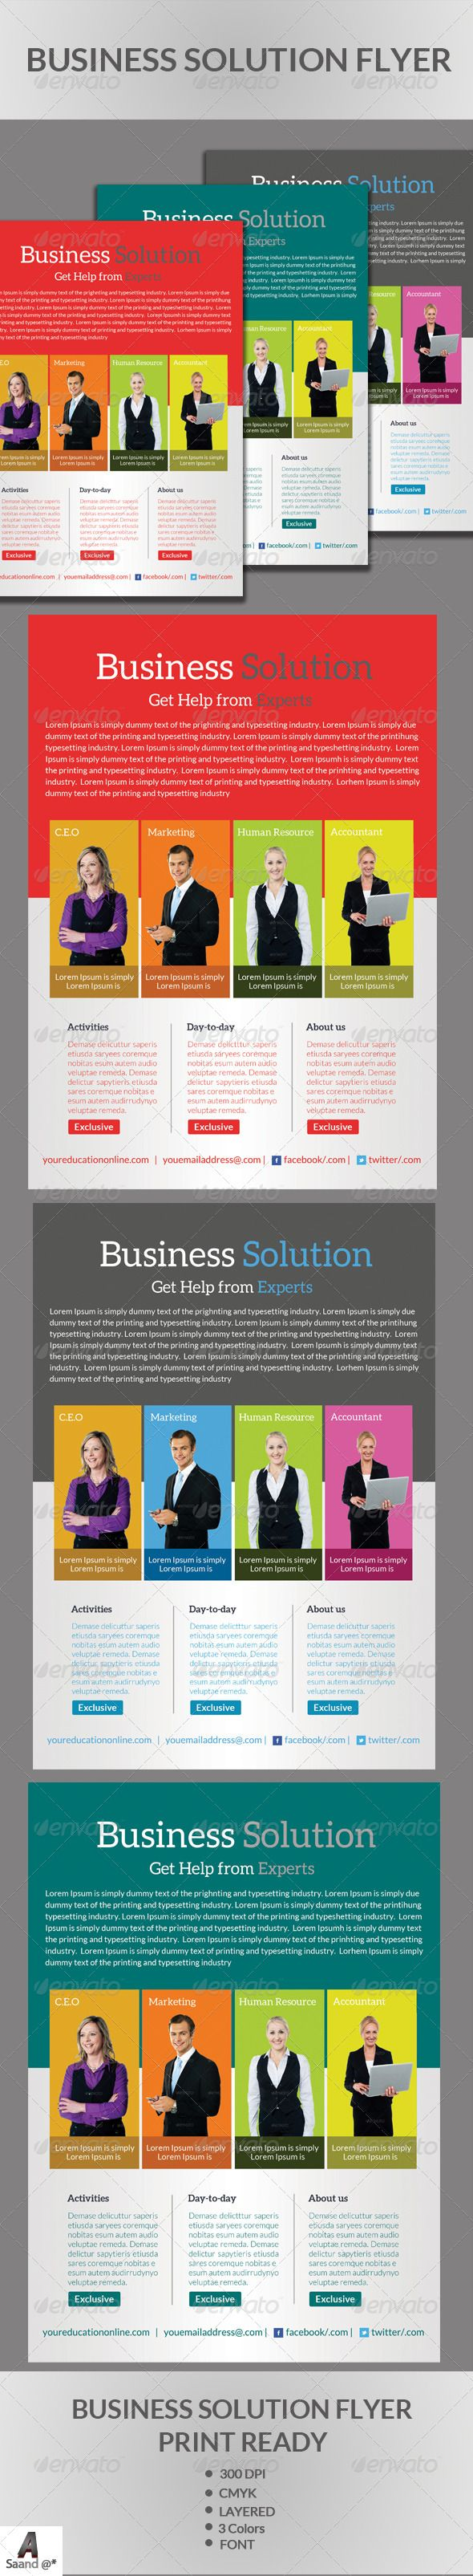 Business Solution Flyer  #GraphicRiver         Business Solution Flyer Template Fully layered PSD 300 Dpi, CMYK Completely editable, print ready Text/Font or Color can be altered as needed Photos are not included in the file Fonts: Lato Font:  .fontsquirrel /fonts/lato   .fontsquirrel /fonts/aleo     Created: 24November13 GraphicsFilesIncluded: PhotoshopPSD Layered: Yes MinimumAdobeCSVersion: #services #shoes #simple #store